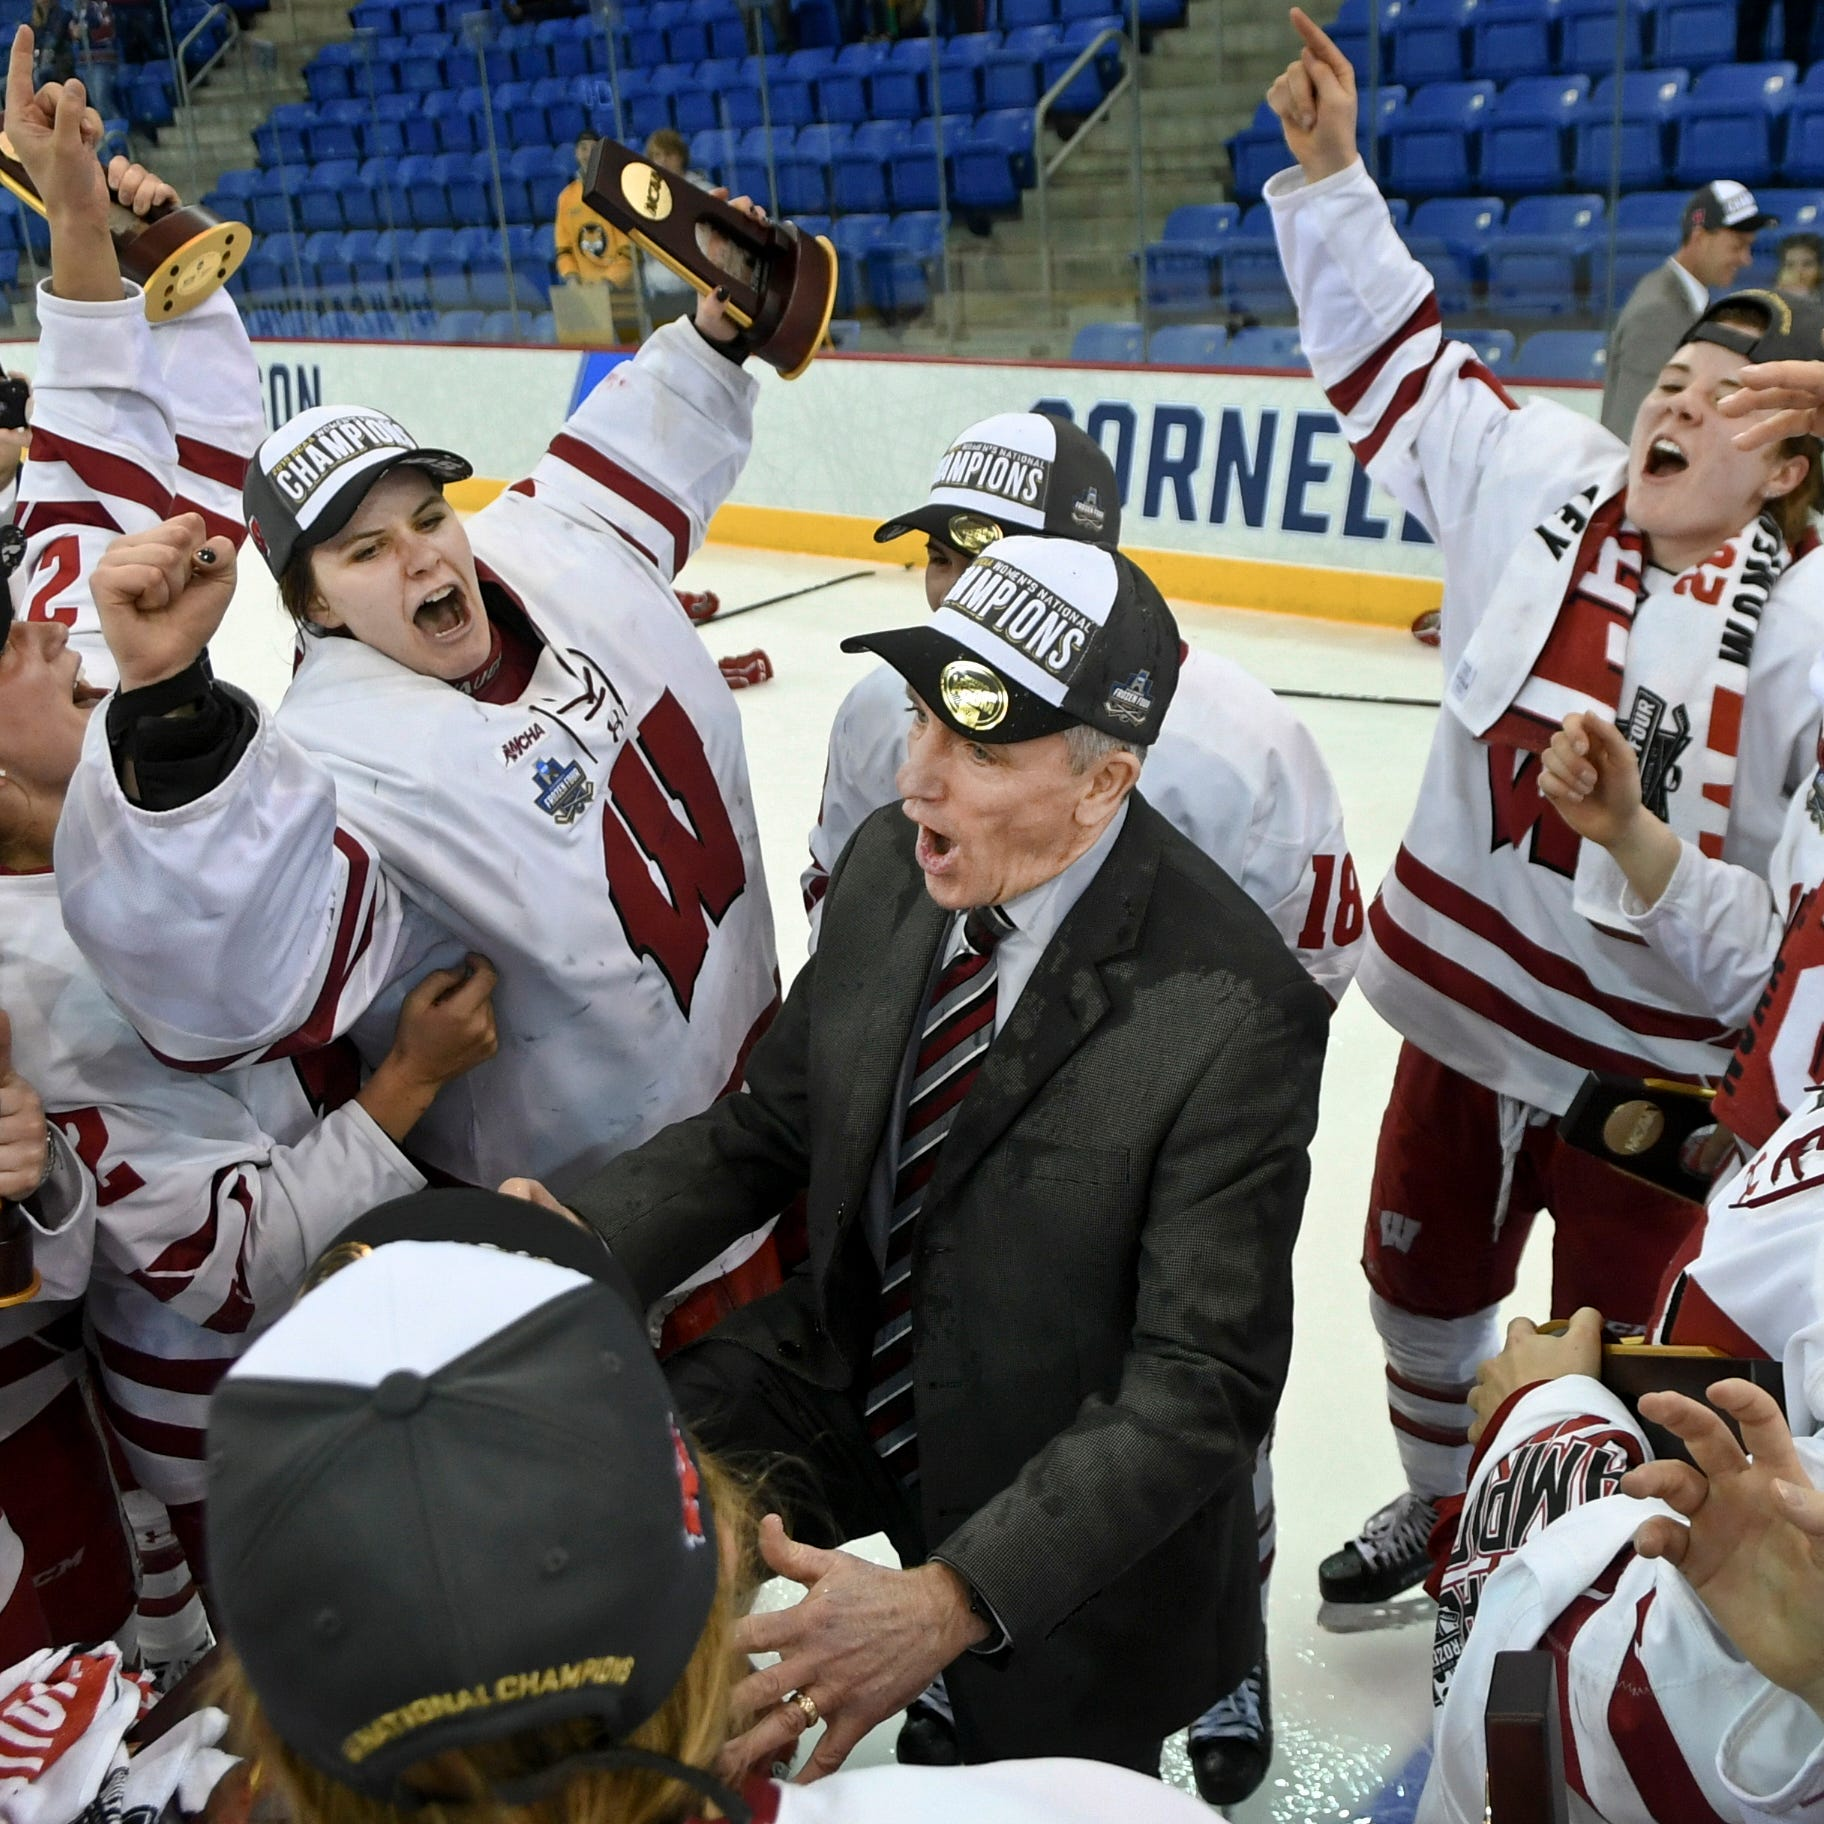 The NCAA women's hockey trophy is coming home to Wisconsin